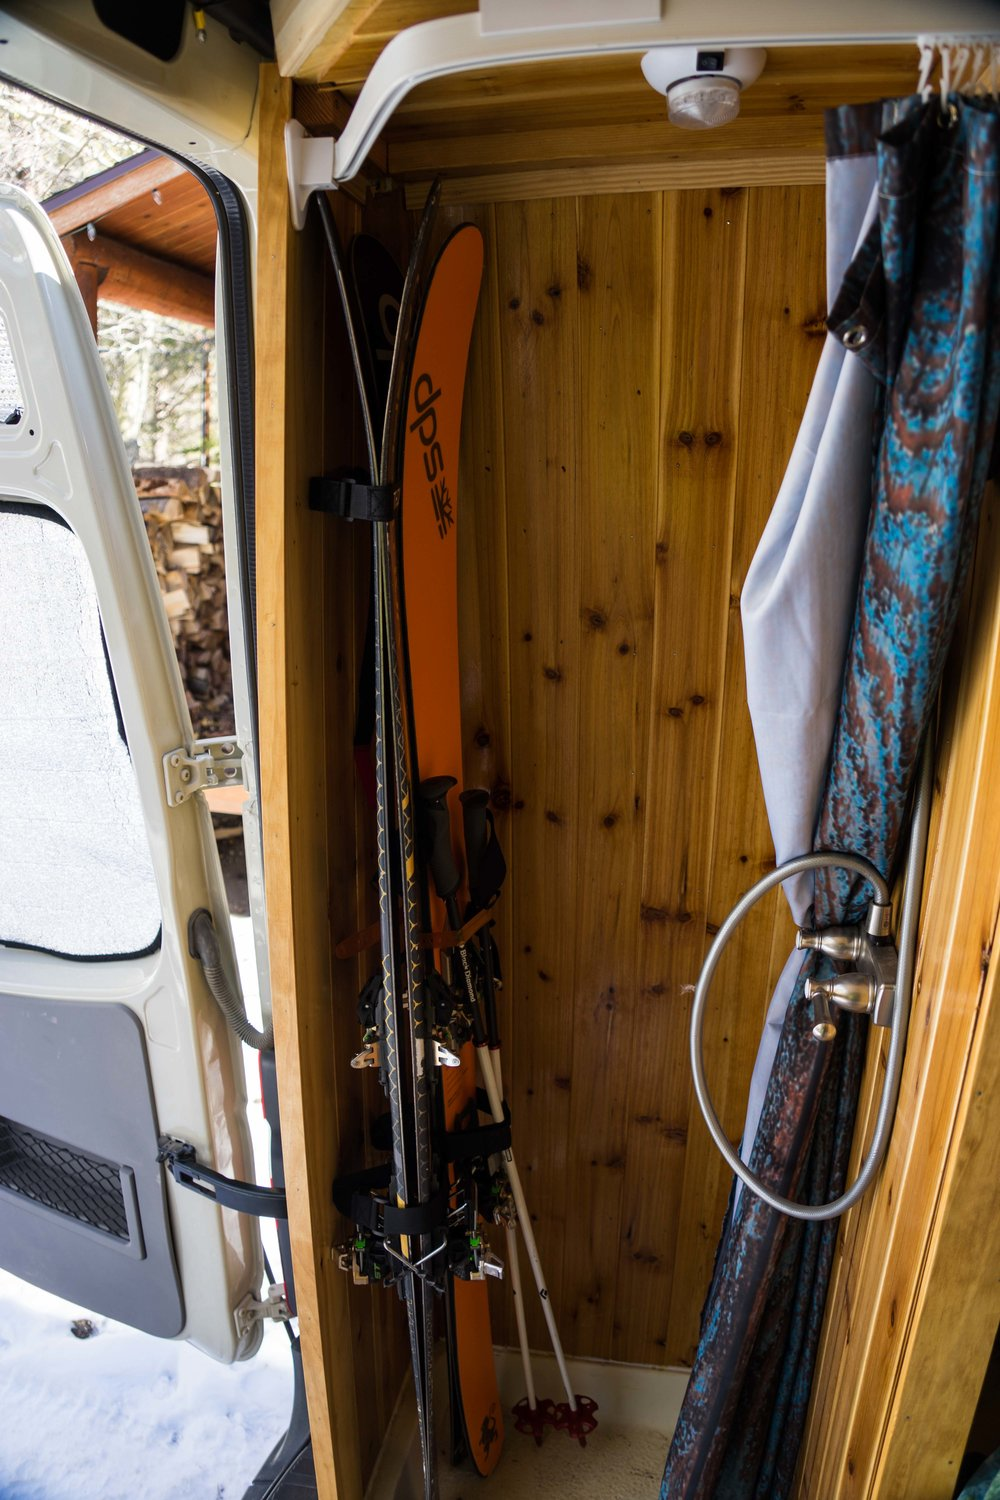 The shower and ski locker. velcro straps hold down the skis.